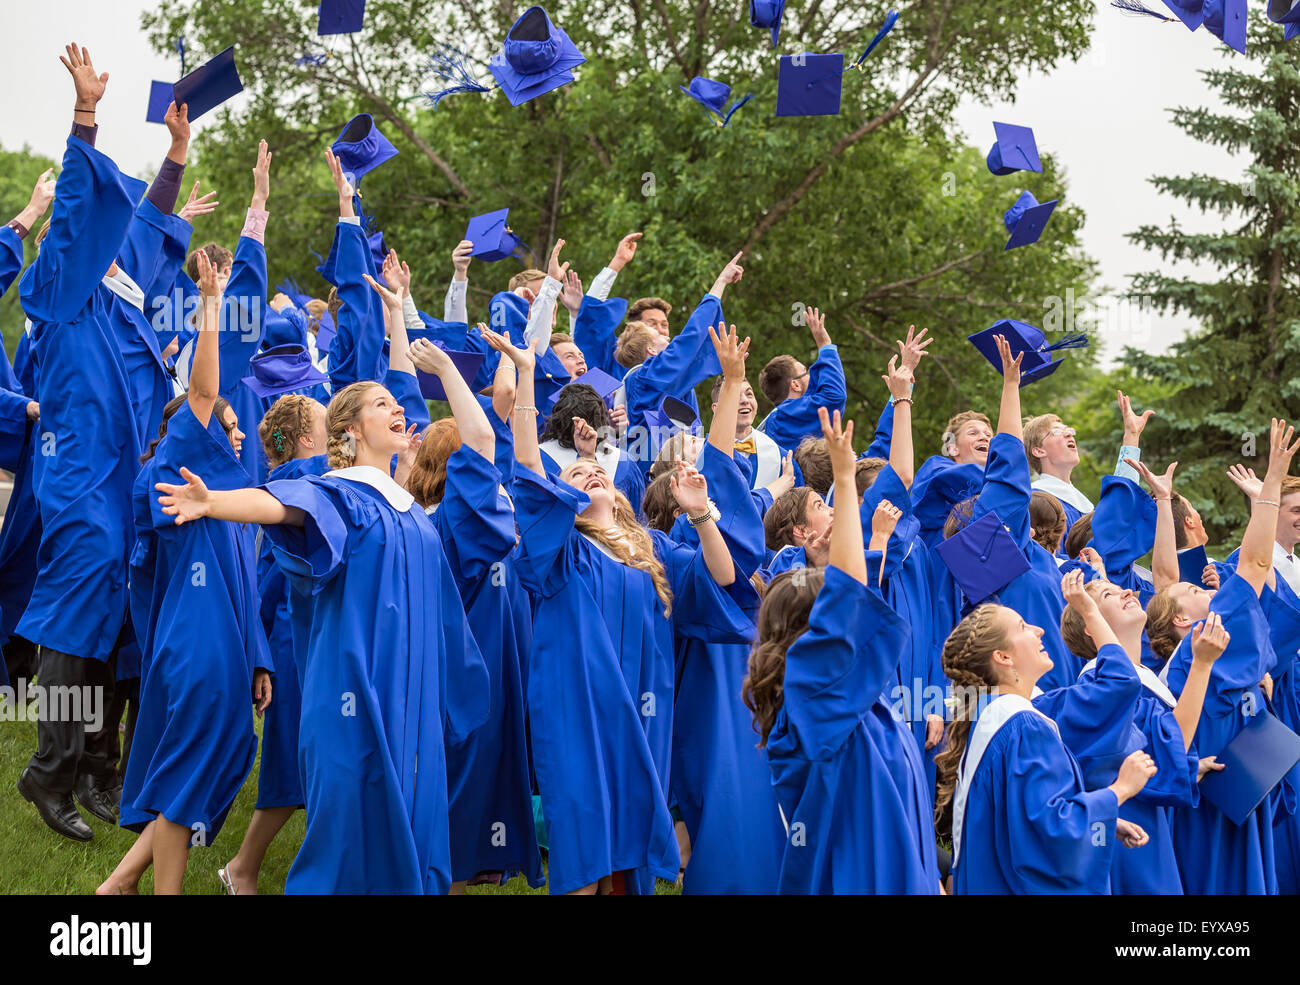 Graduates tossing caps in air, at a high school graduation ceremony. - Stock Image